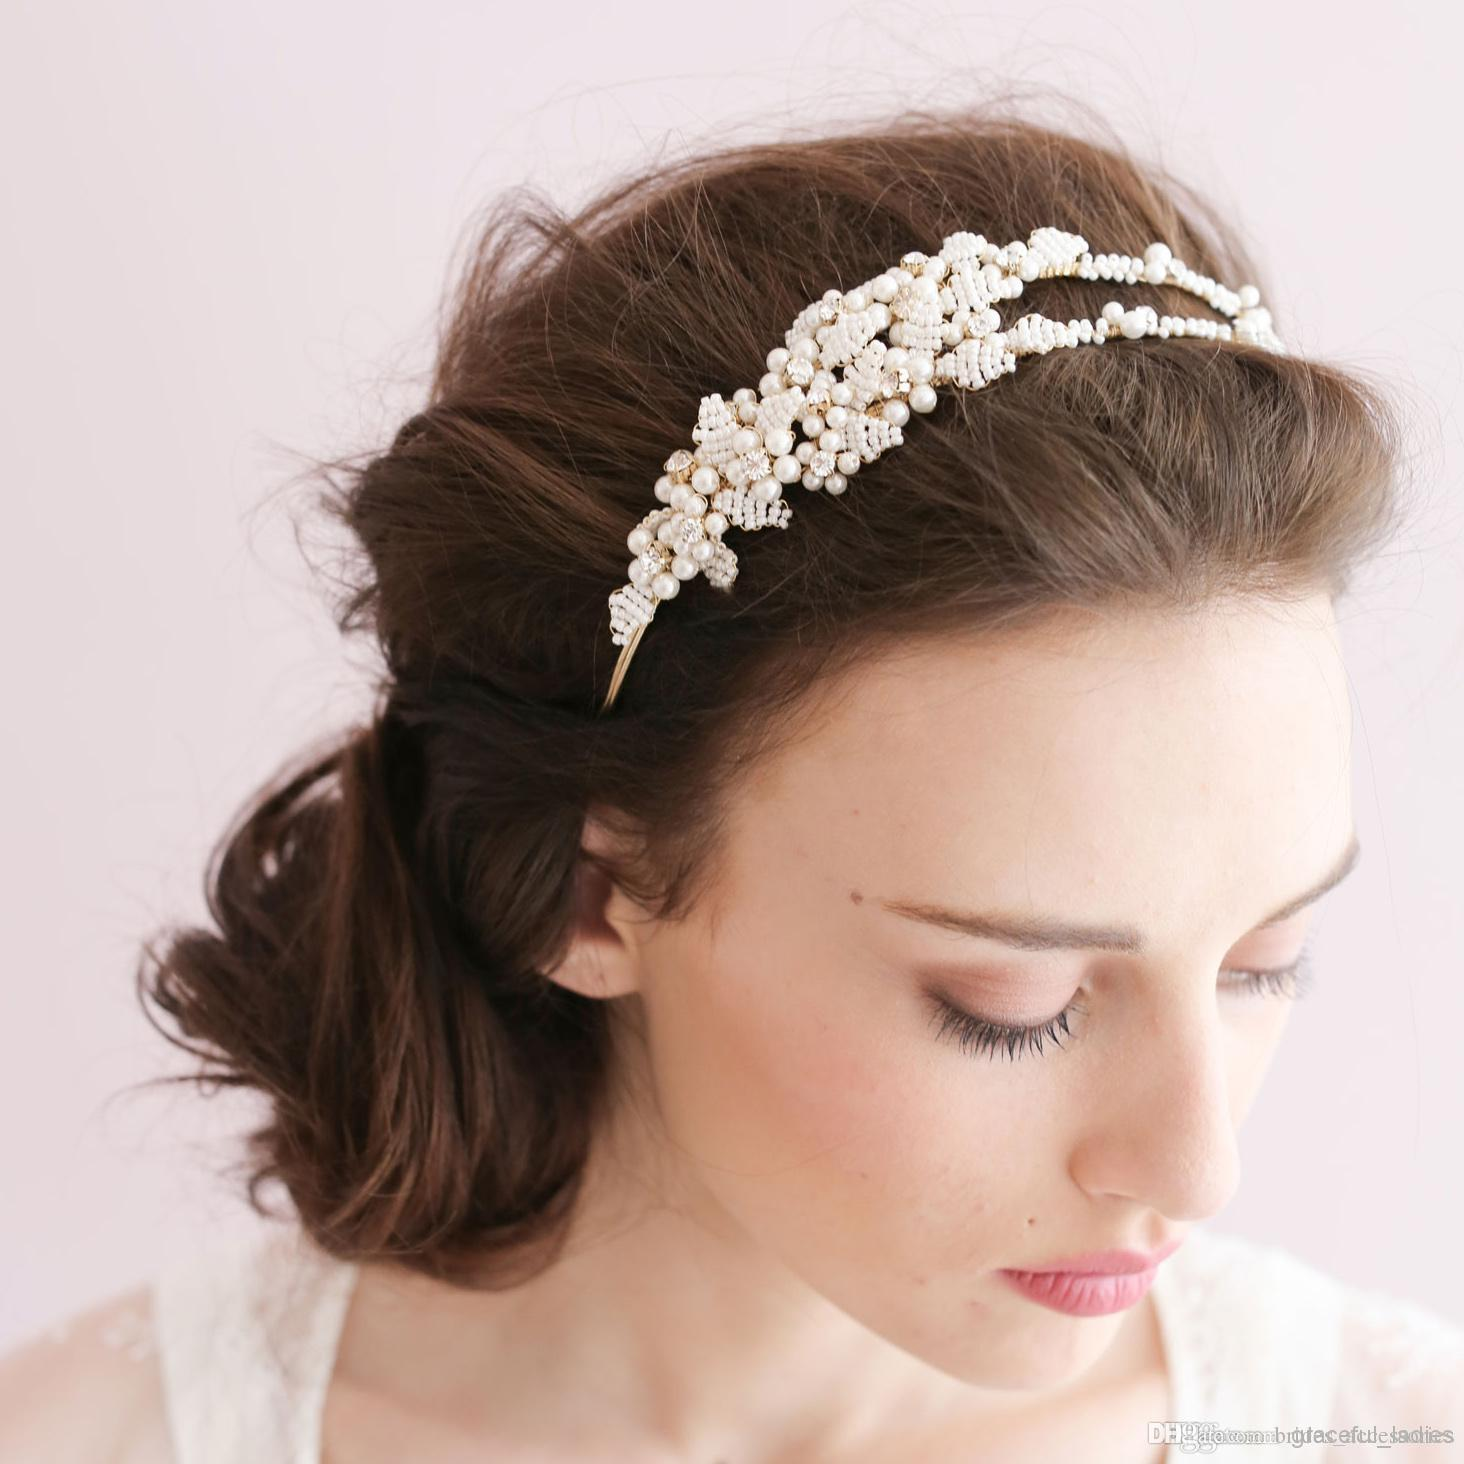 Tiny Bead Leaves Double Headband Hair Clasp Bridal Headpiece Beaded Wedding  Headpiece Bride Accessories Hair Accessories Headpieces Hair Accessories  For ... f70e974d5d1